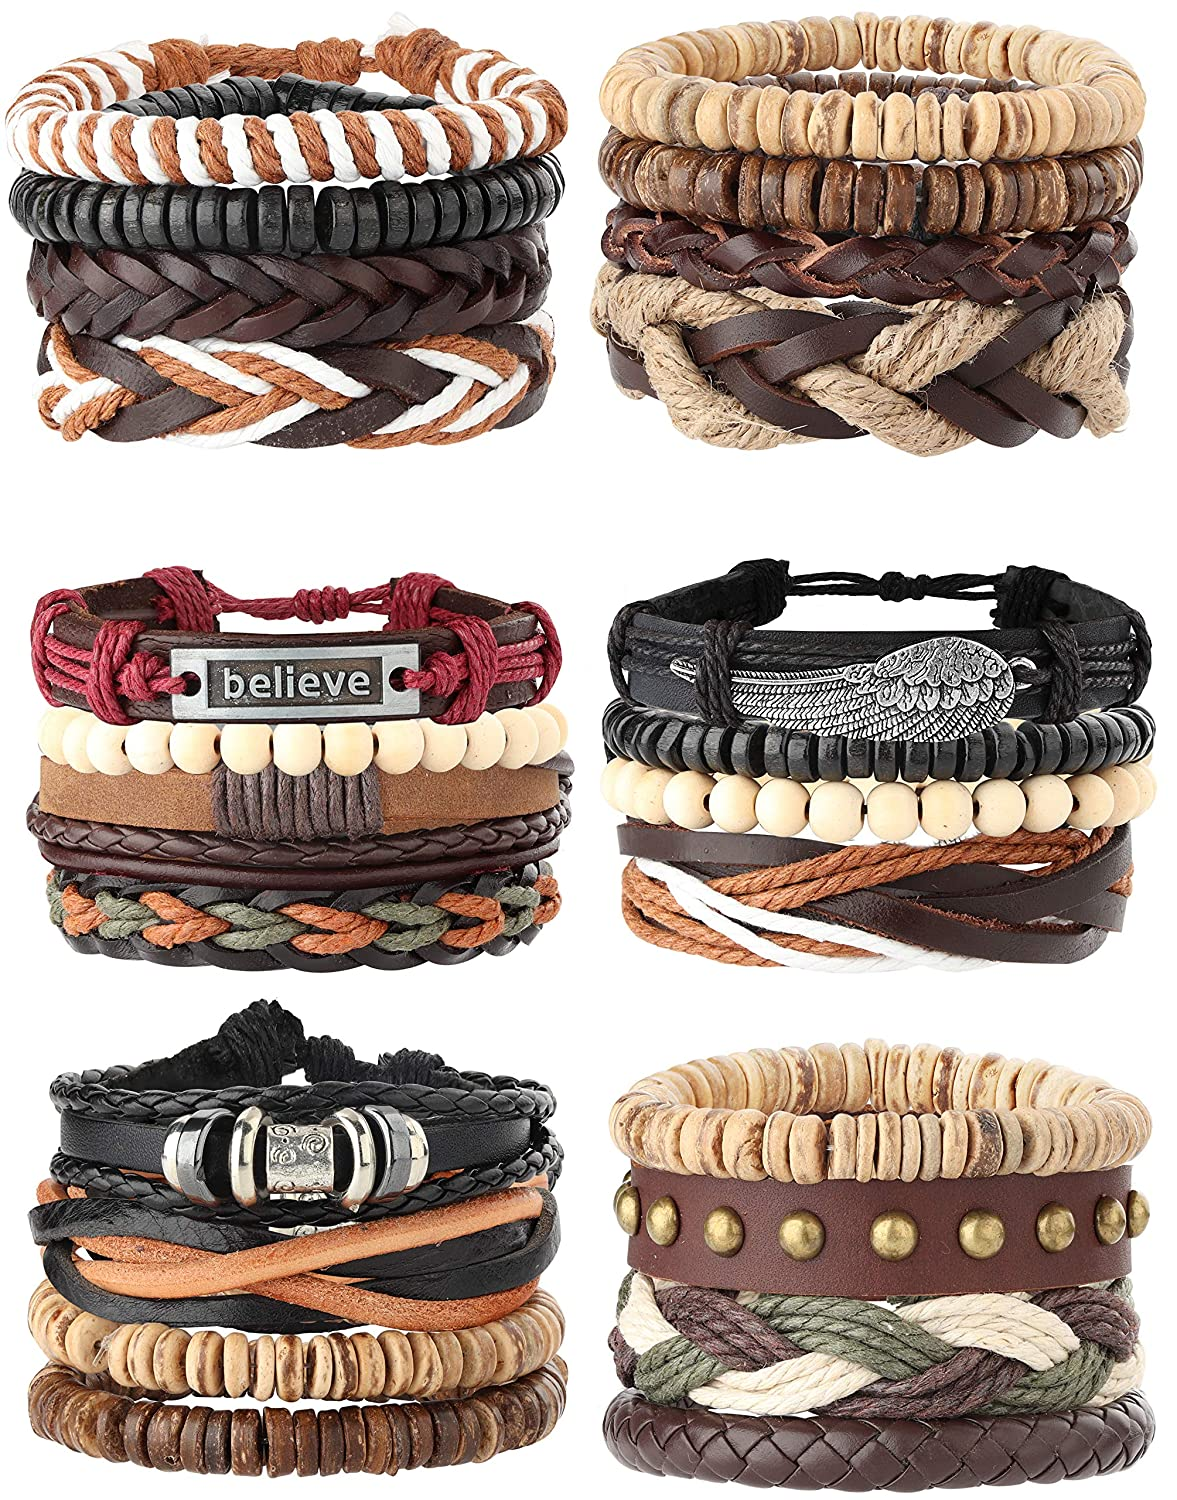 Milacolato 26Pcs Woven Braided Leather Bracelet for Men Women Hemp Cords Wood Beads Cuff Bracelets Adjustable QT-L-B00010-black